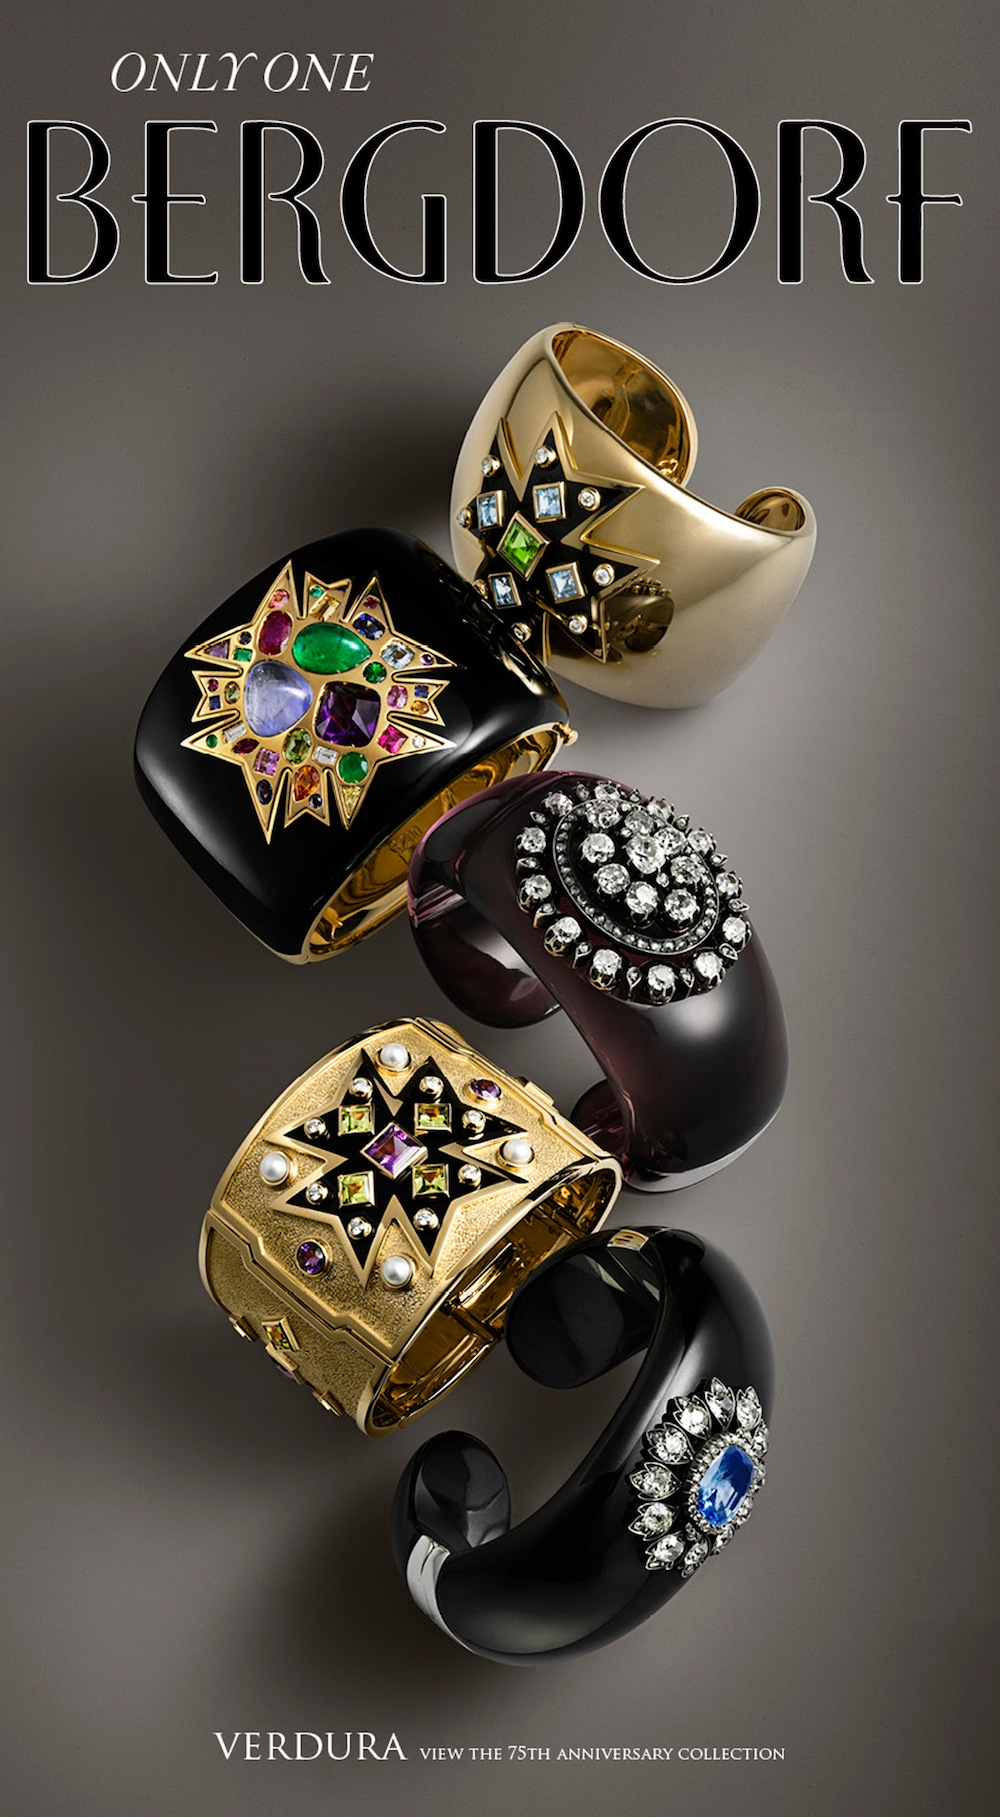 Nigel Cox photographs designs by luxury jewelry brand Verdura for